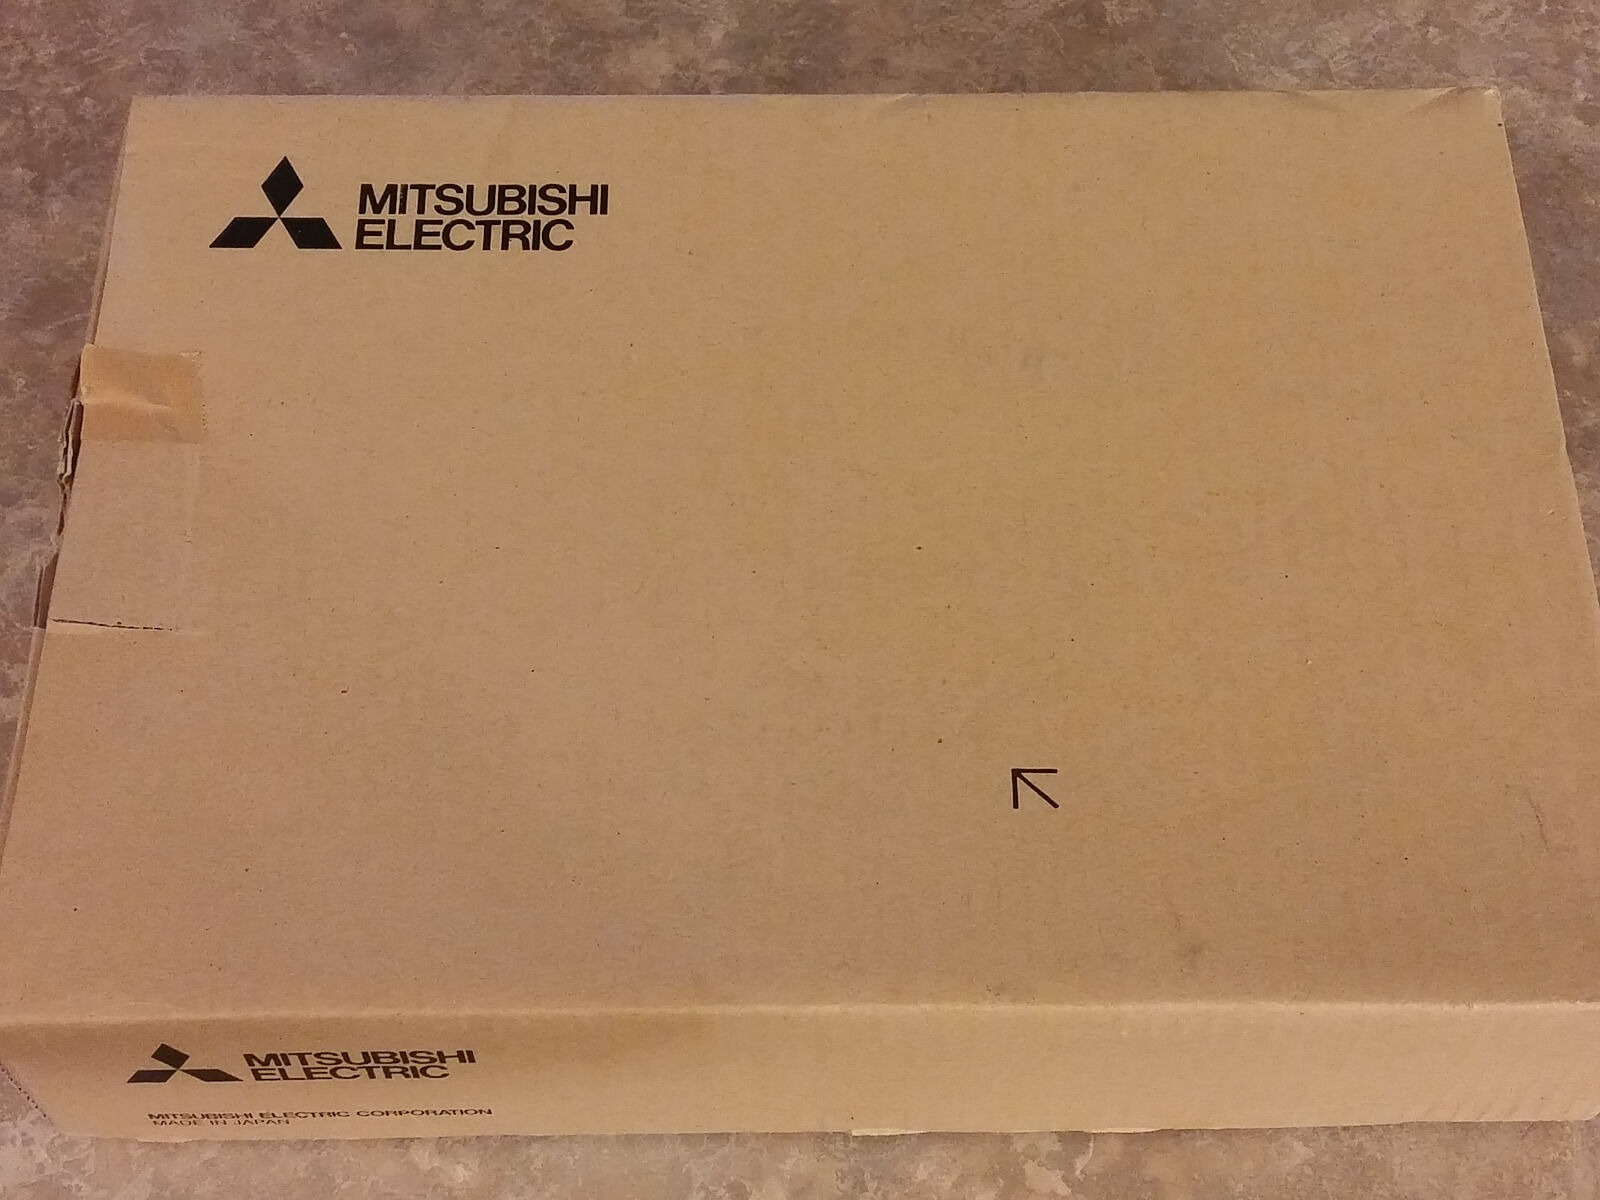 Mitsubishi 1F-HS408S-01 Cable and Tubing for Robot NEW IN BOX